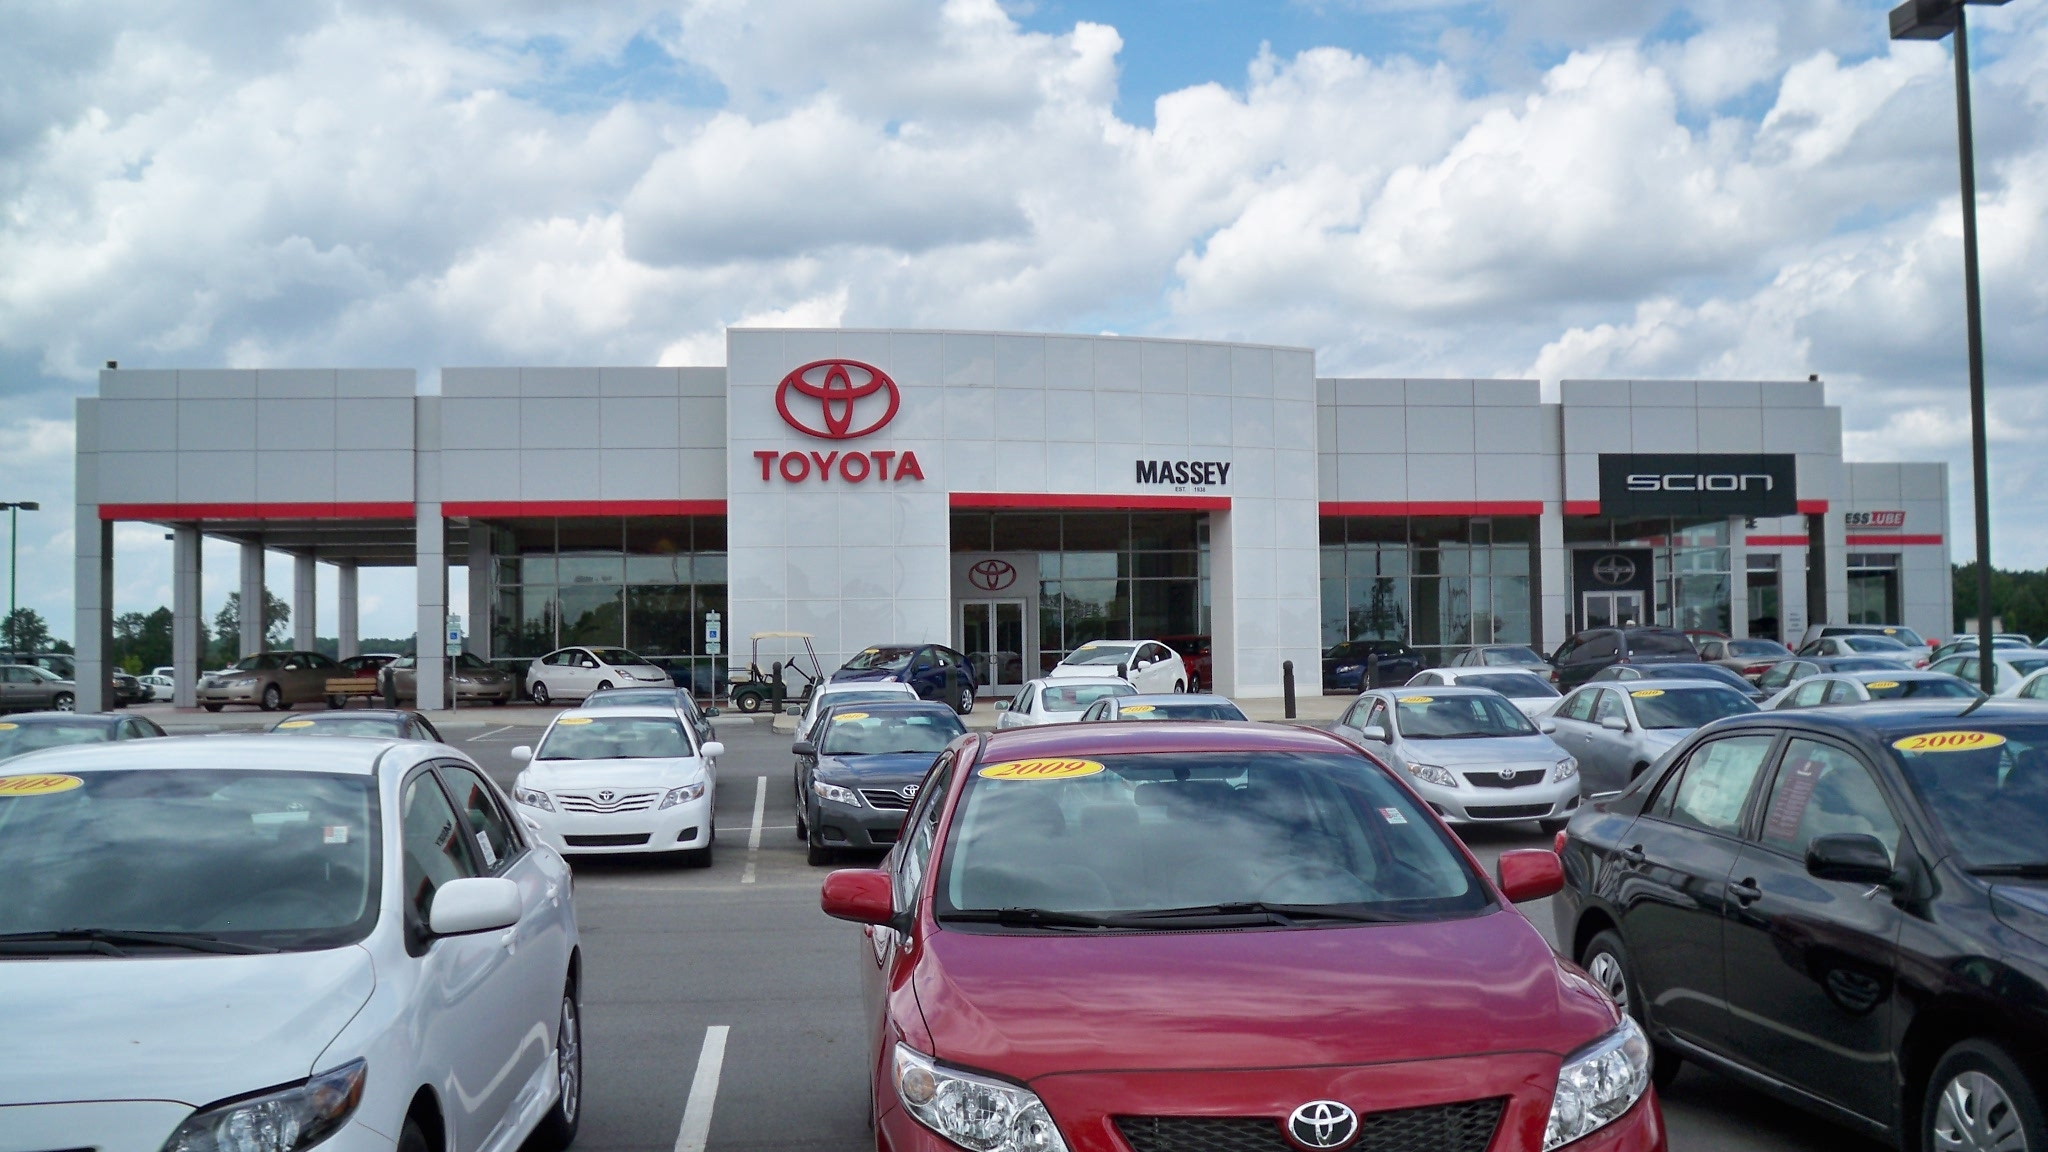 Wheel Stores Near Me >> Massey Toyota Coupons near me in Boydton | 8coupons